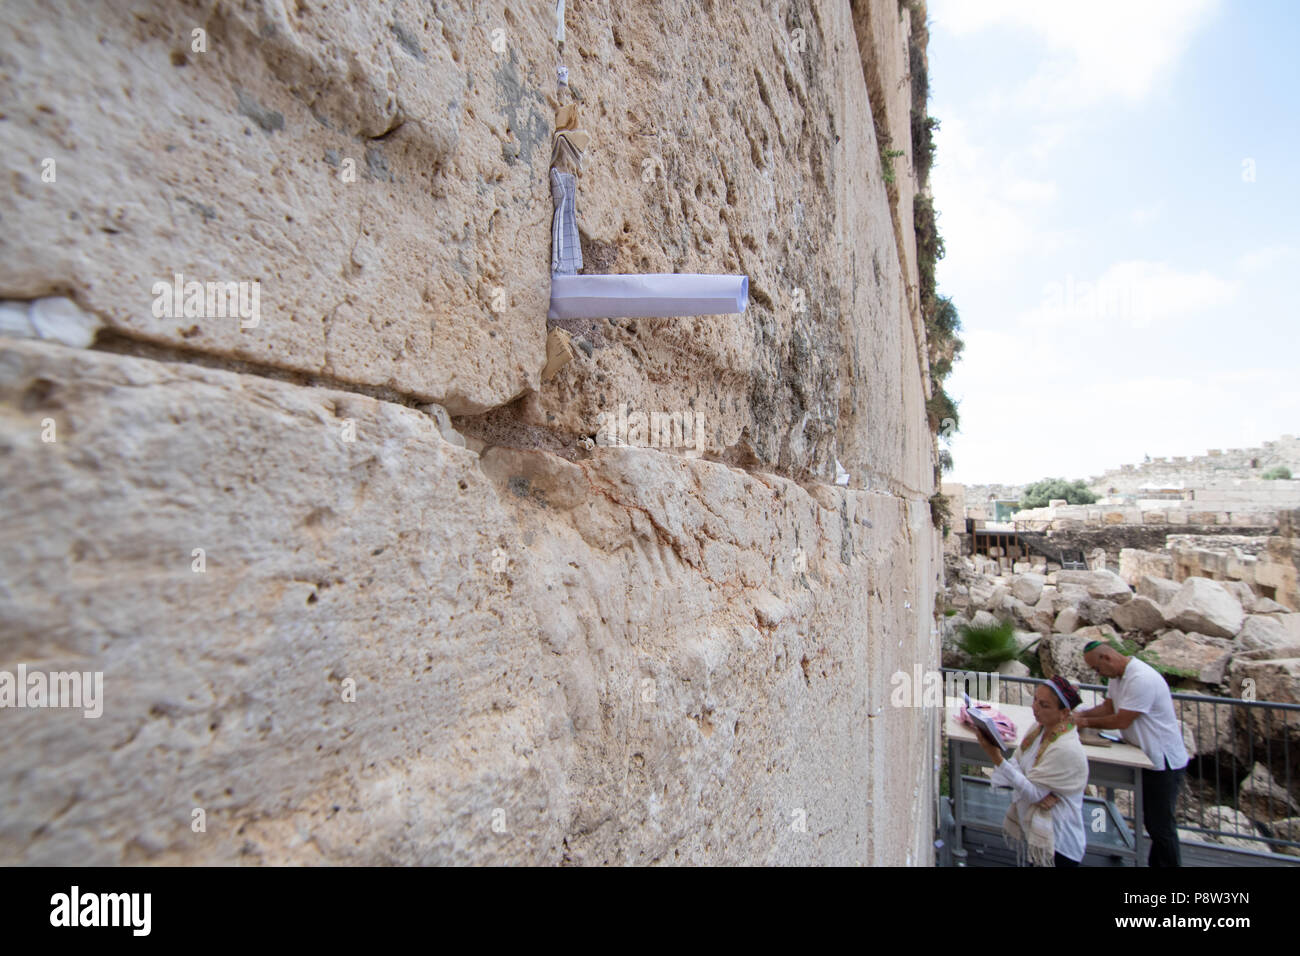 Jerusalem, Israel. 13th July, 2018. Papers with wishes and prayers left by the people in between the Western Wall stones. © Valentin Sama-Rojo/Alamy Live News. - Stock Image